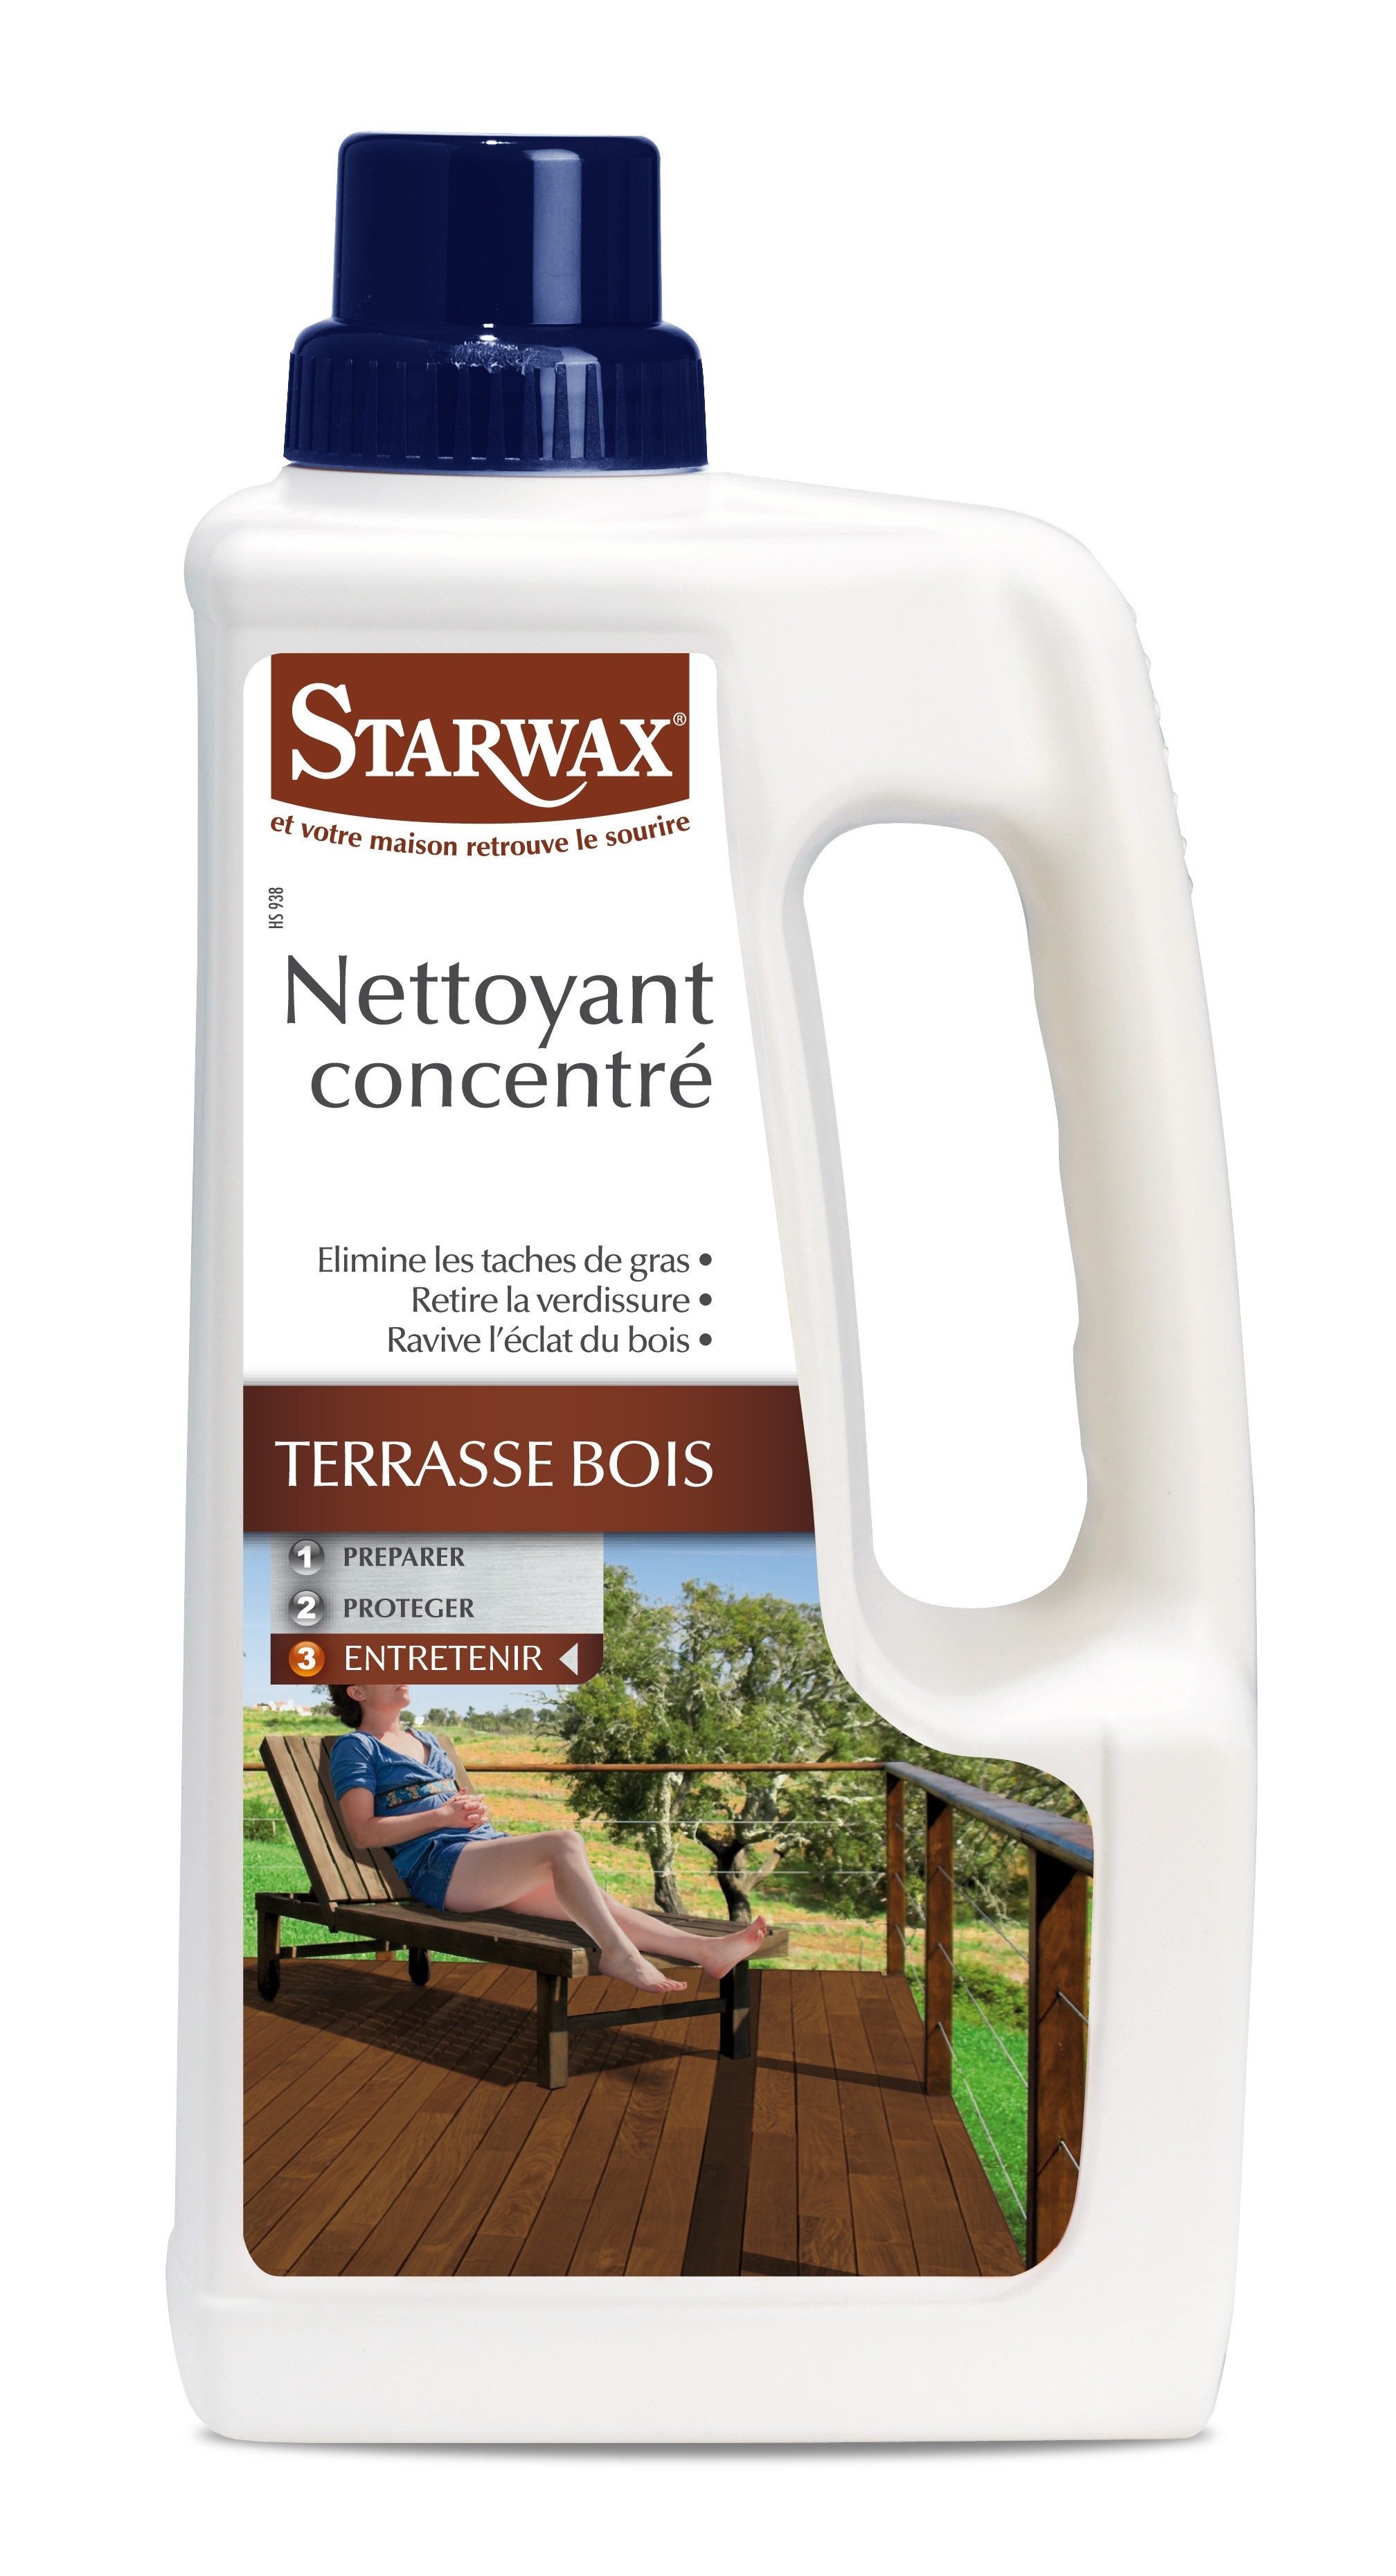 nettoyant terrasse bois 1 l starwax. Black Bedroom Furniture Sets. Home Design Ideas